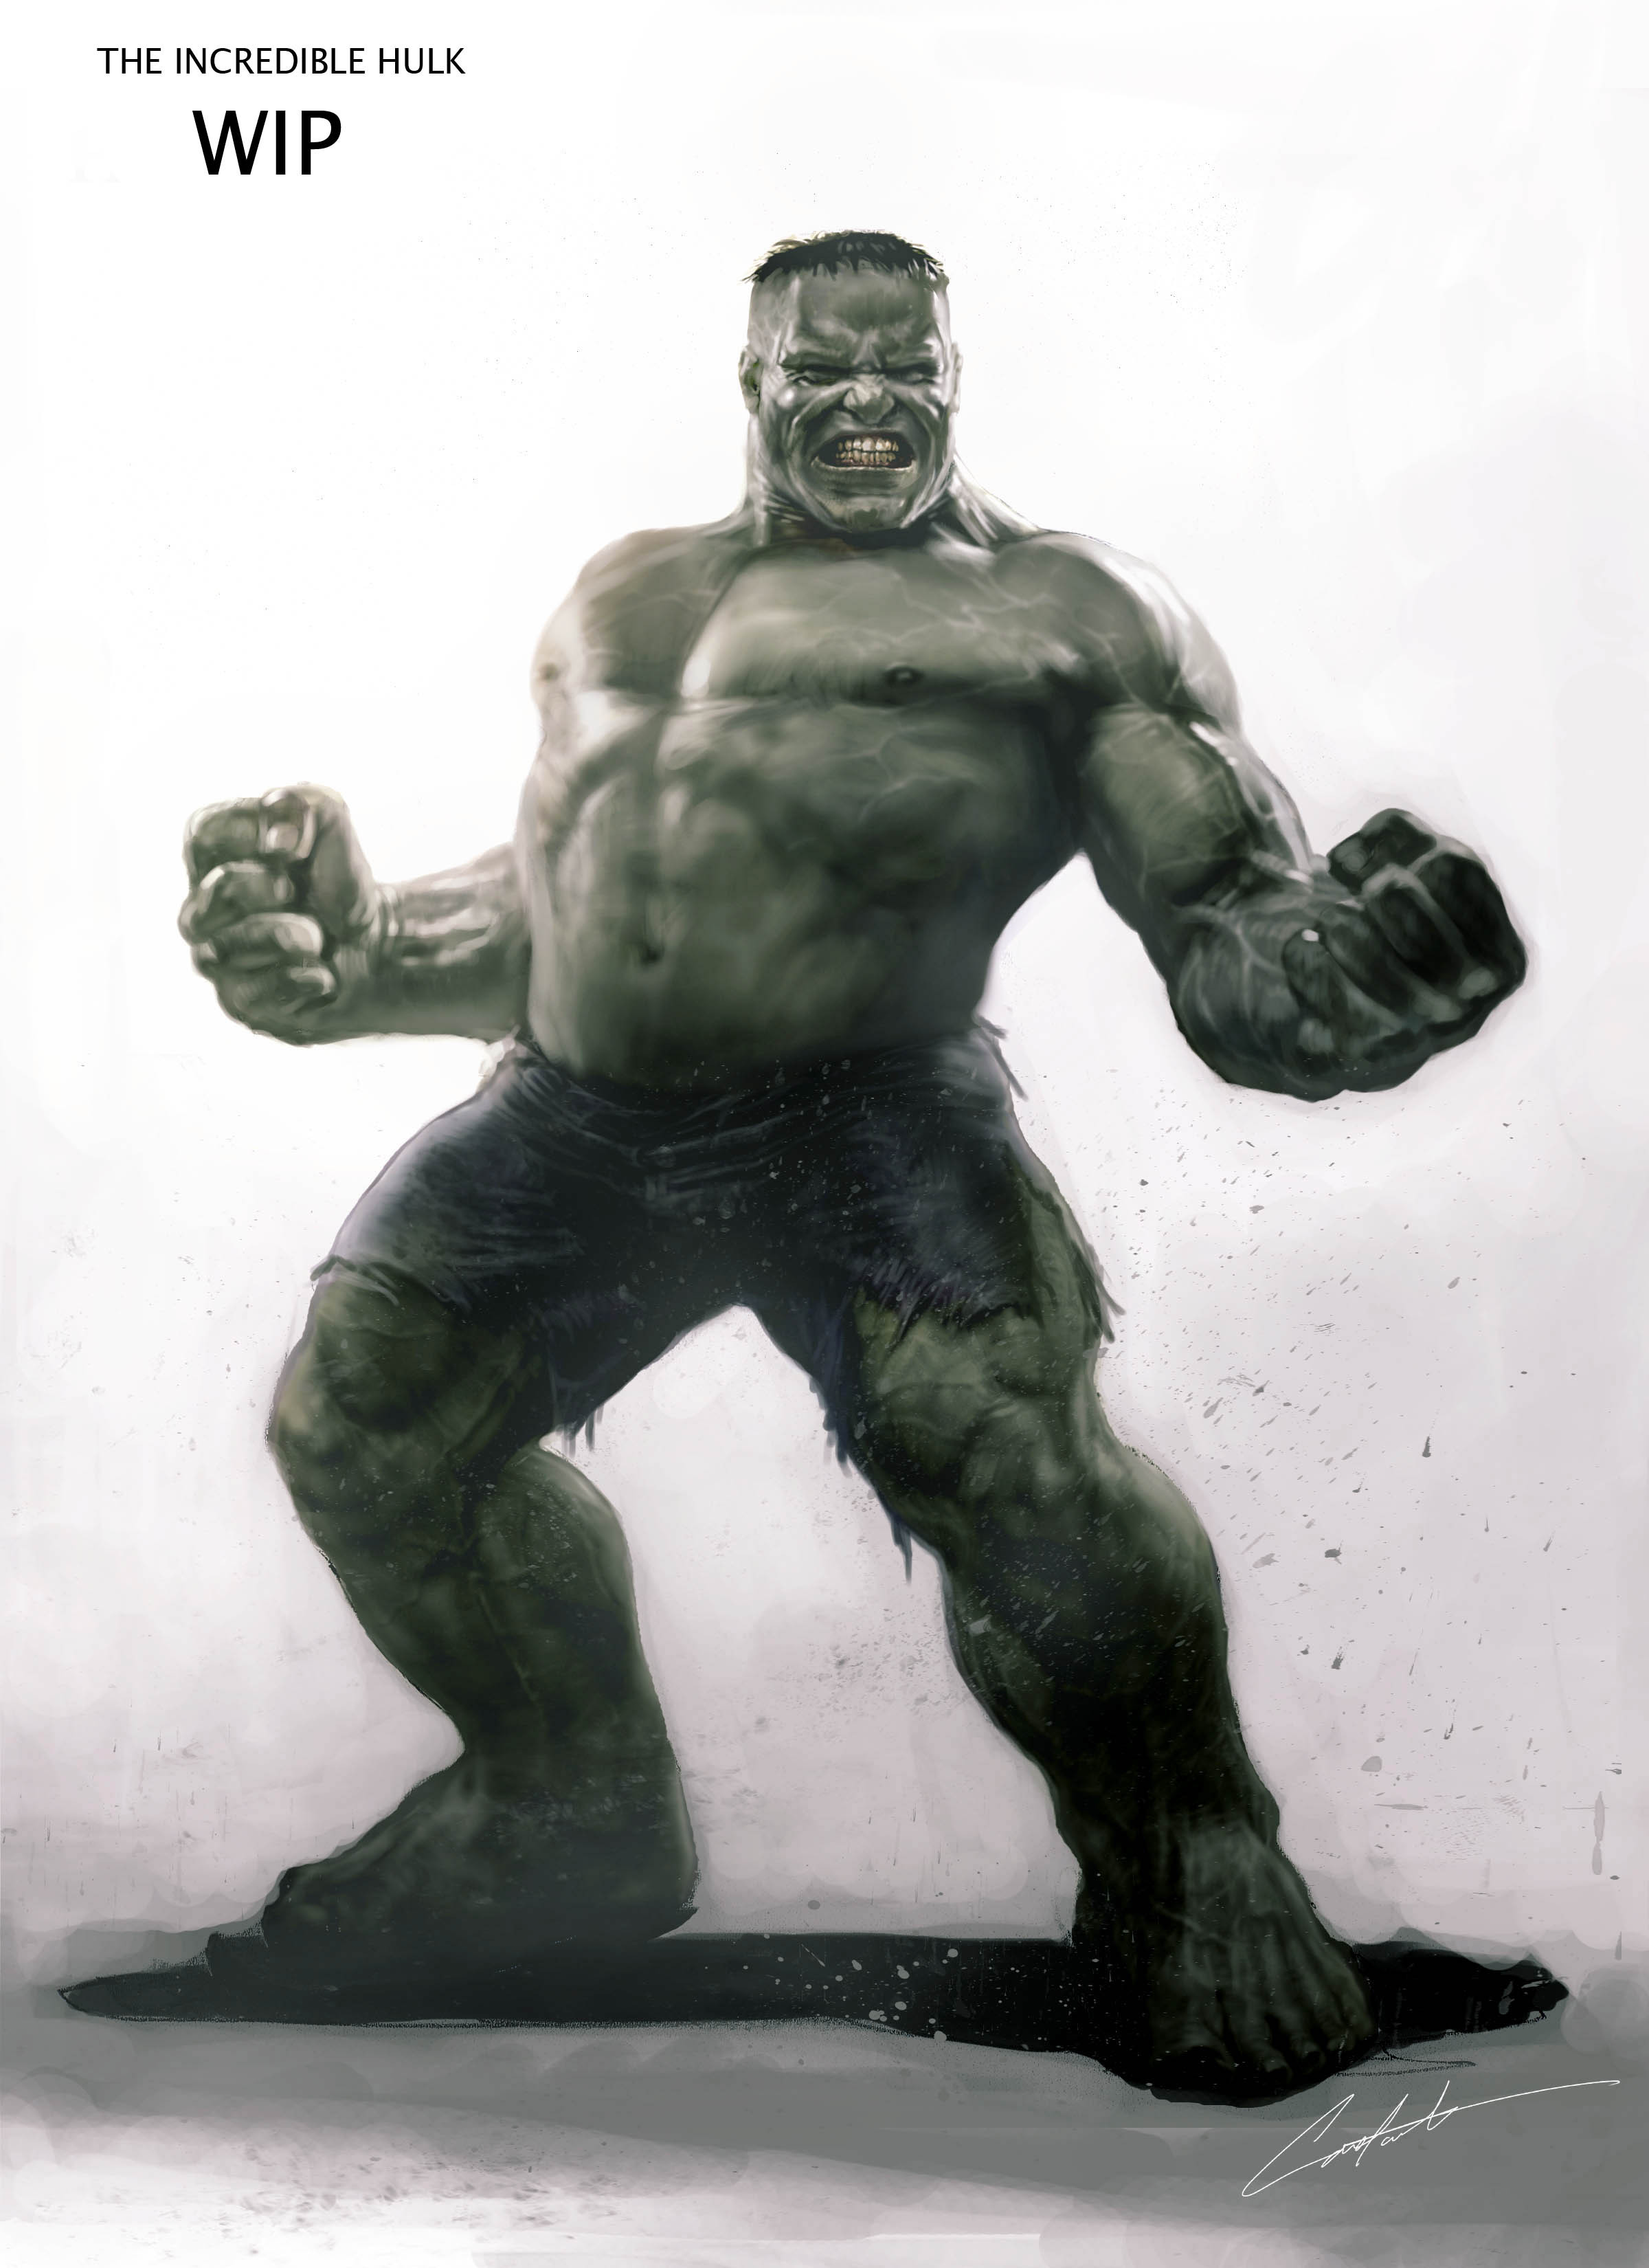 Early Hulk Design for the incredible hulk movie